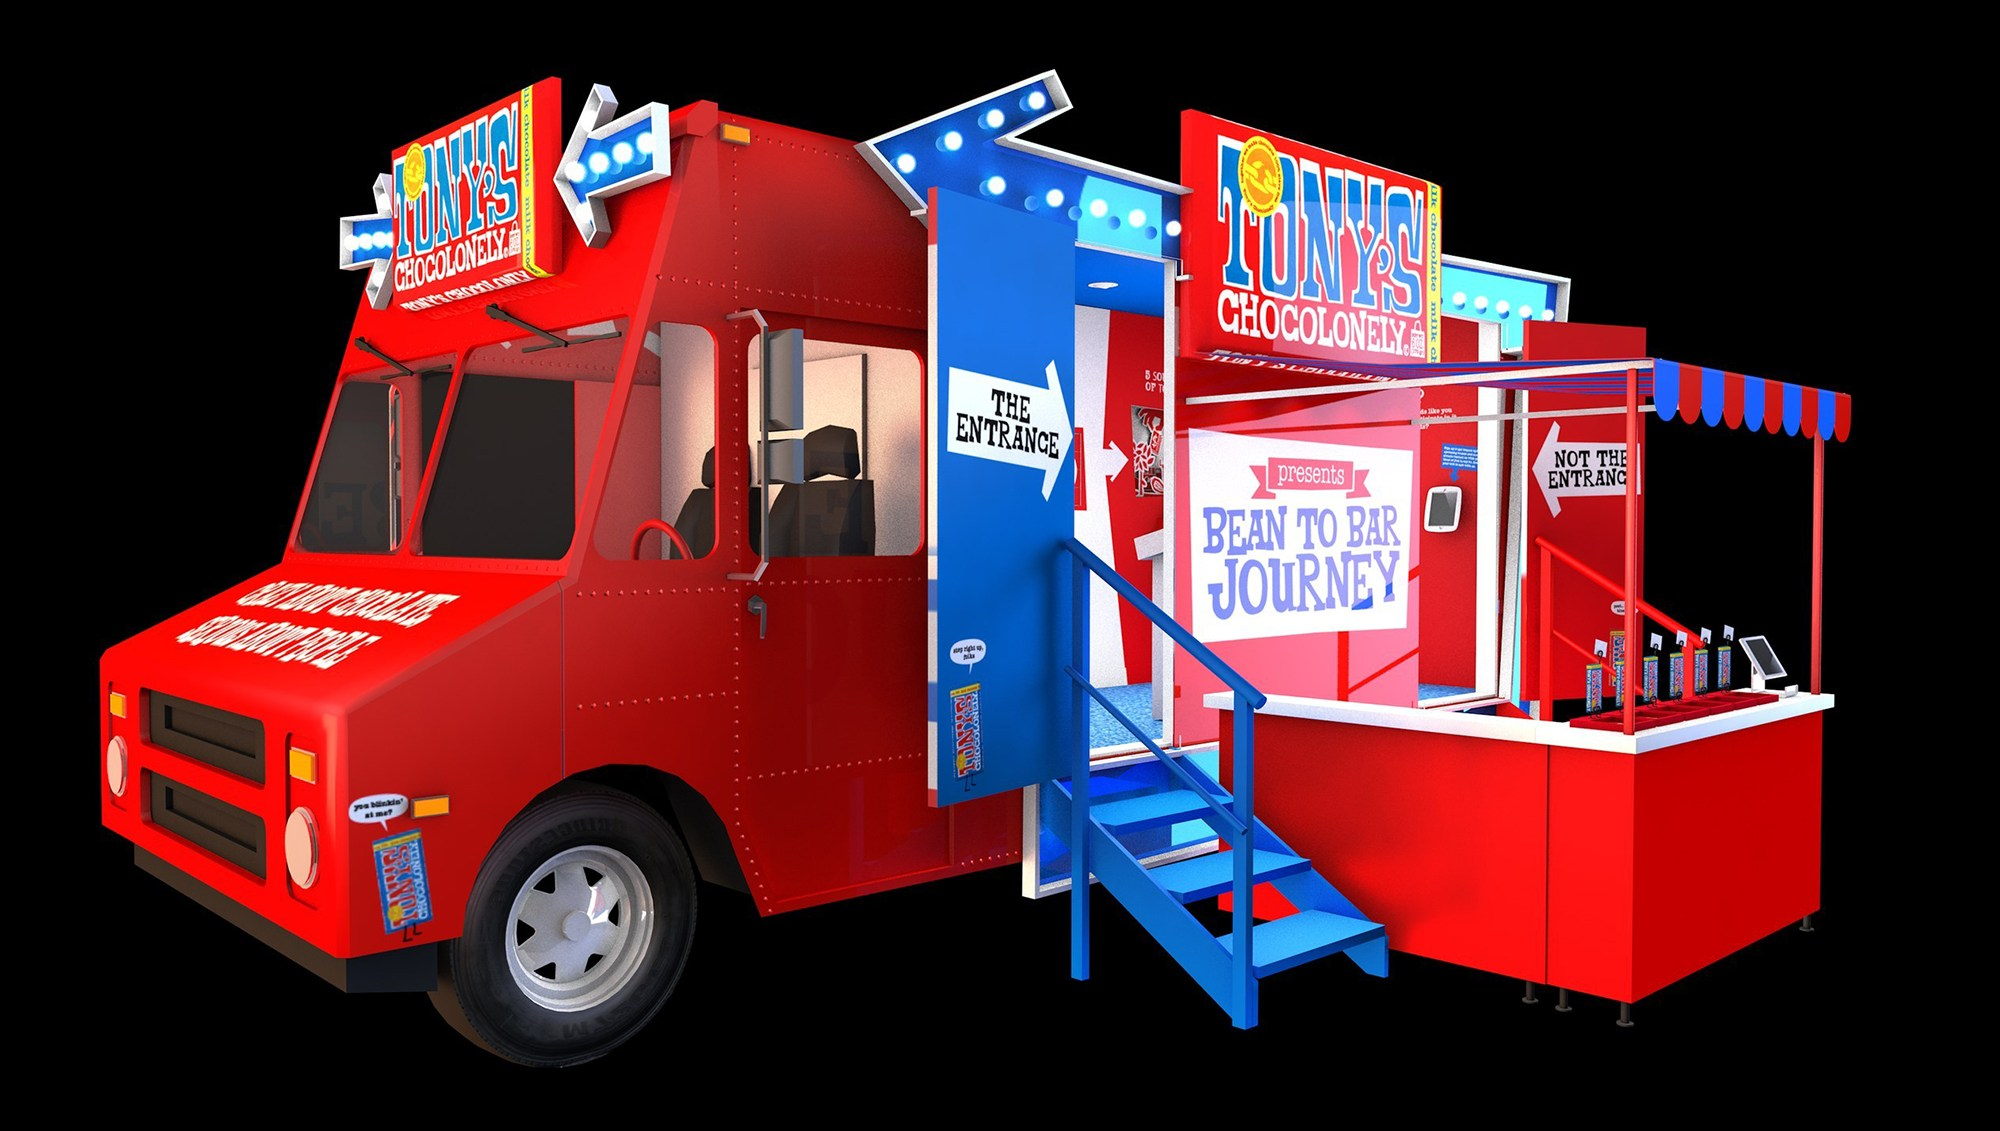 Tony's Chocolonely Chocotruck